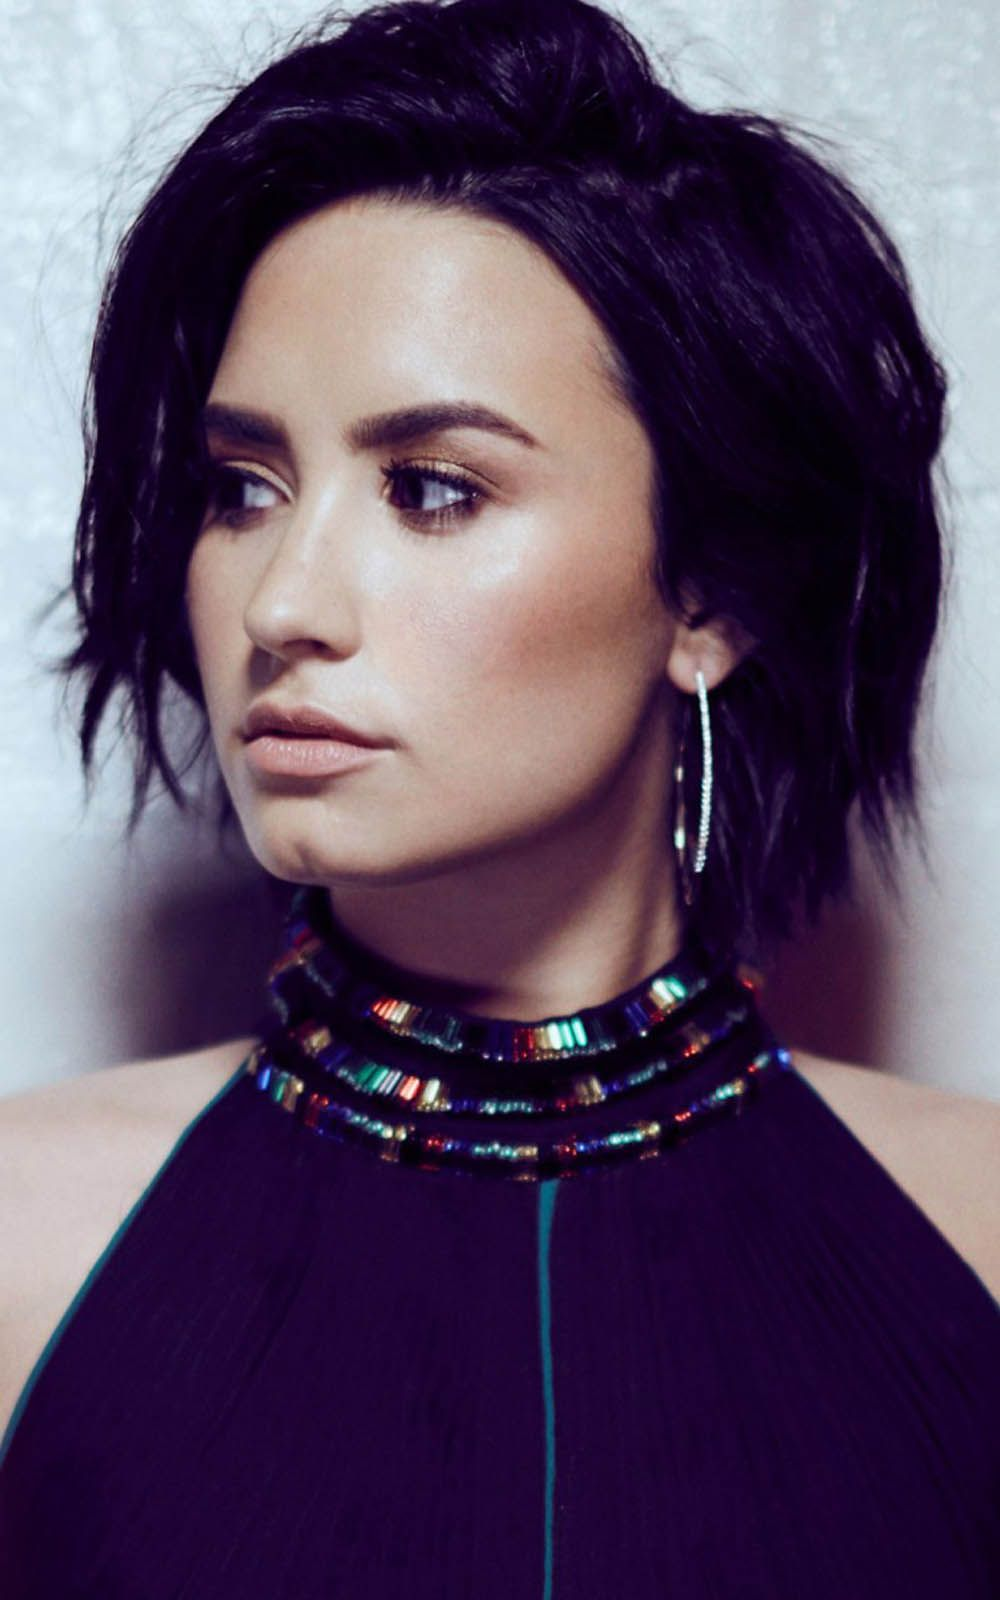 Demi Lovato 2017 New Photoshoot Hd Mobile Wallpaper Demi Lovato Demi Lovato 2017 Lovato